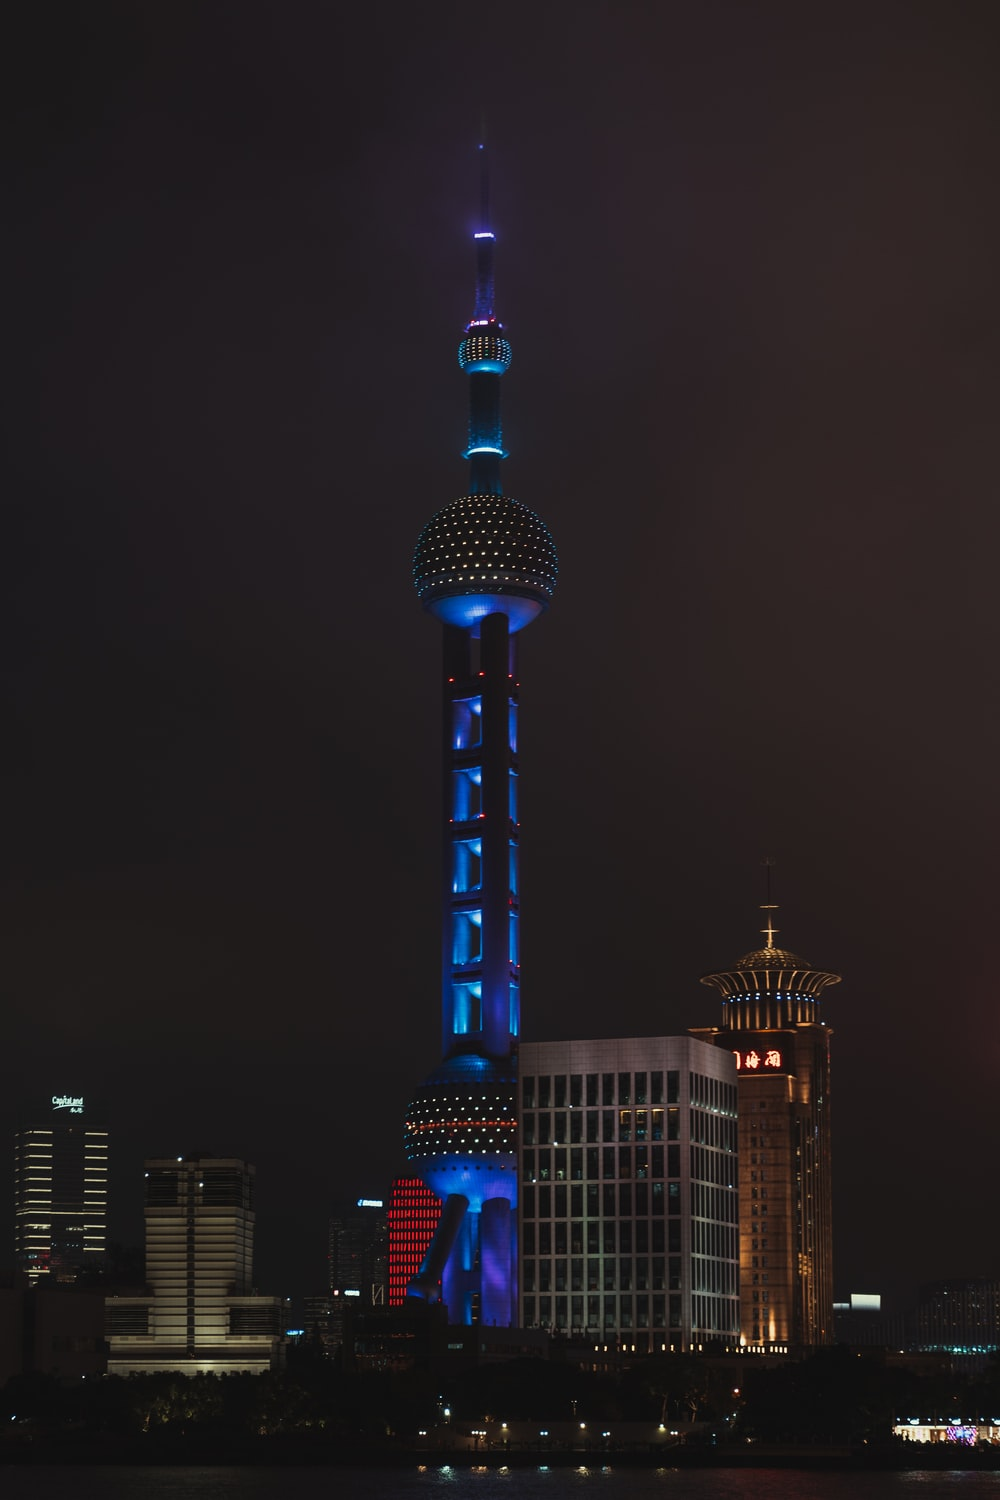 white and blue tower during night time